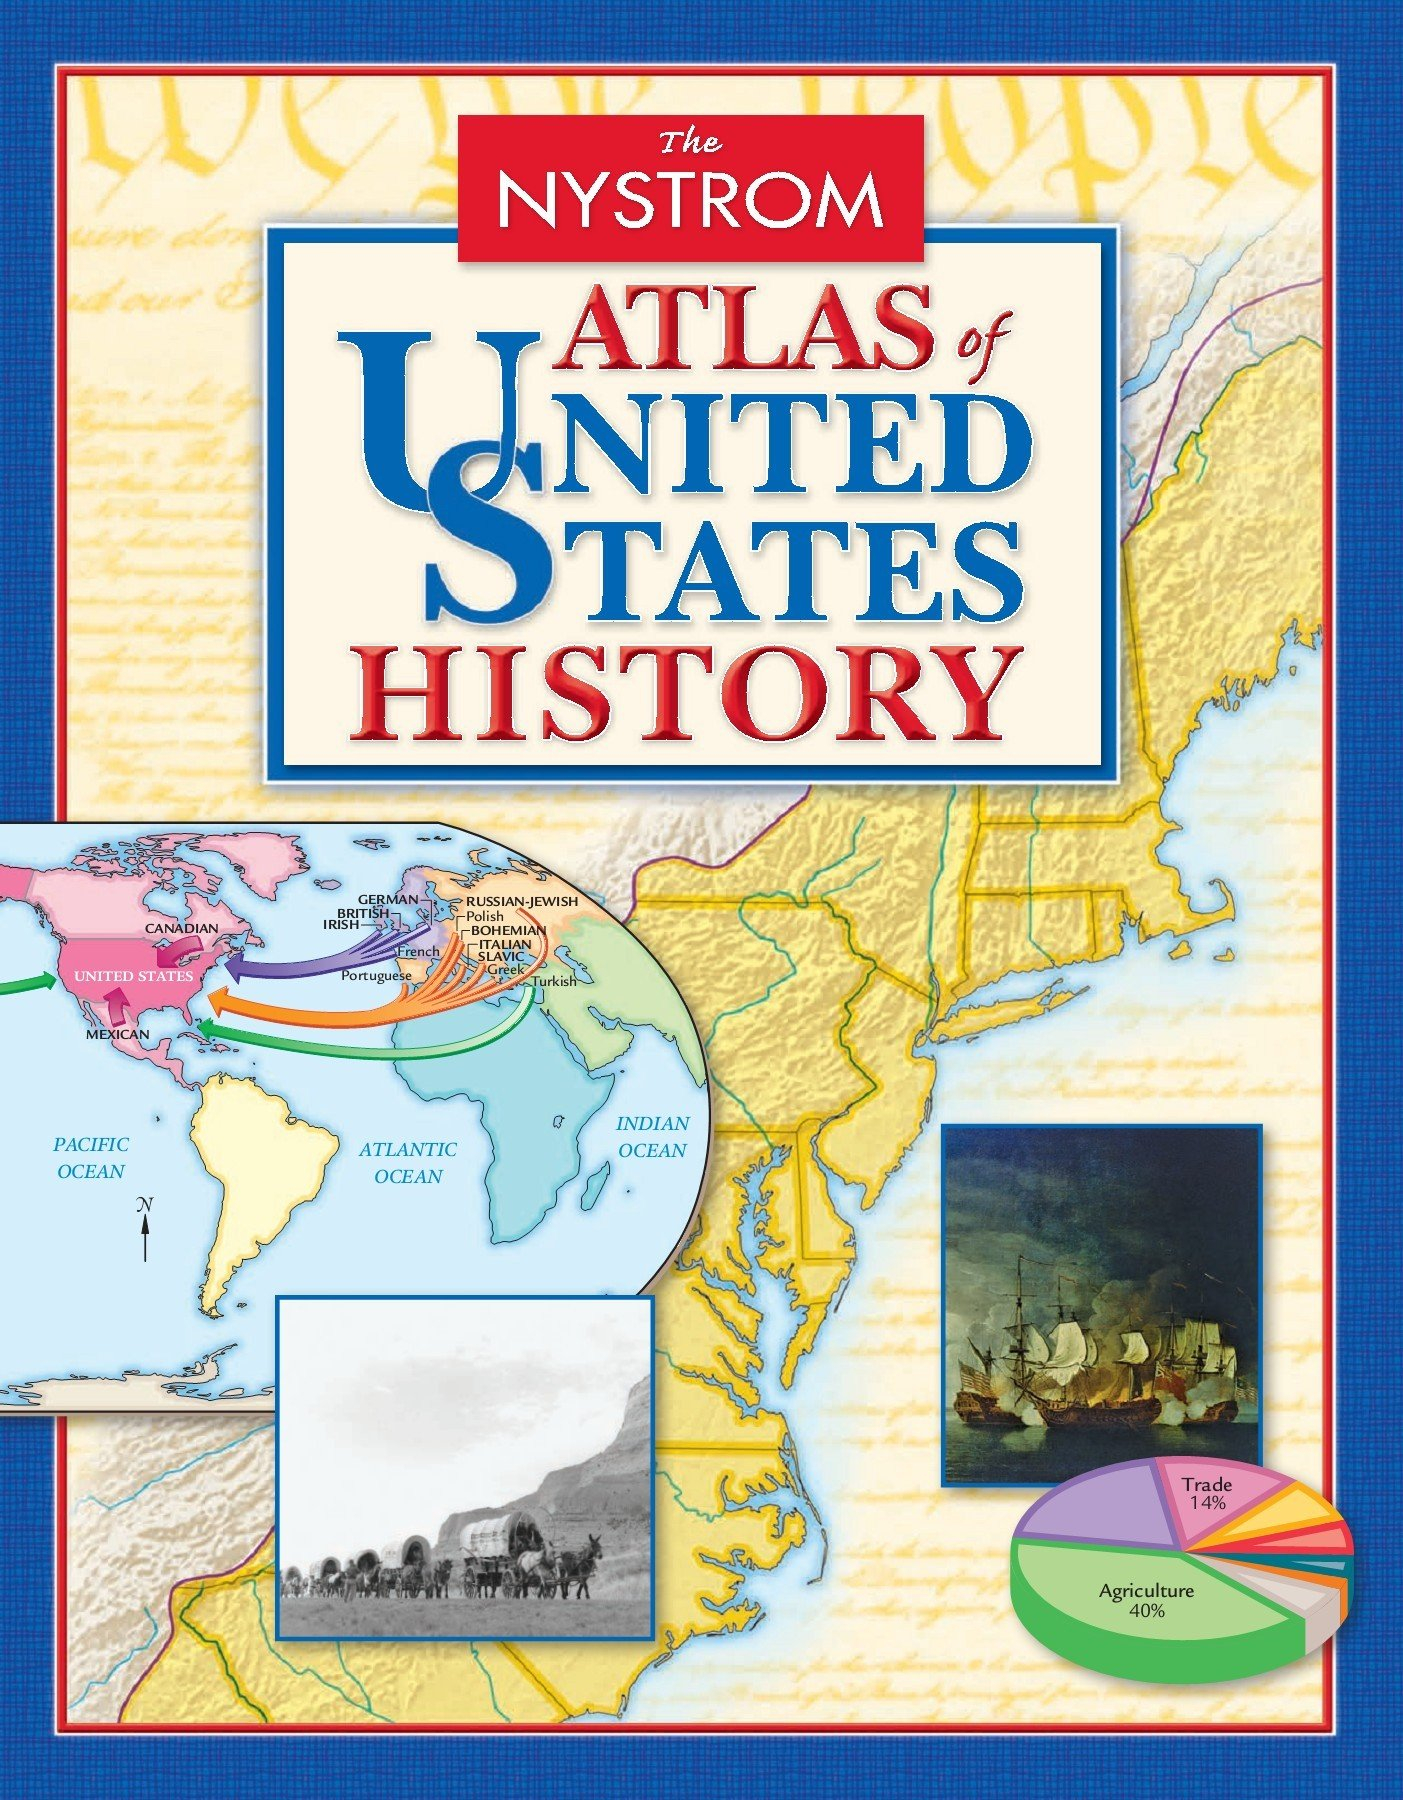 Nys182V25 Small Pages 1  50  Text Version  Fliphtml5 Pertaining To Nystrom Atlas Of Us History Worksheets Answers